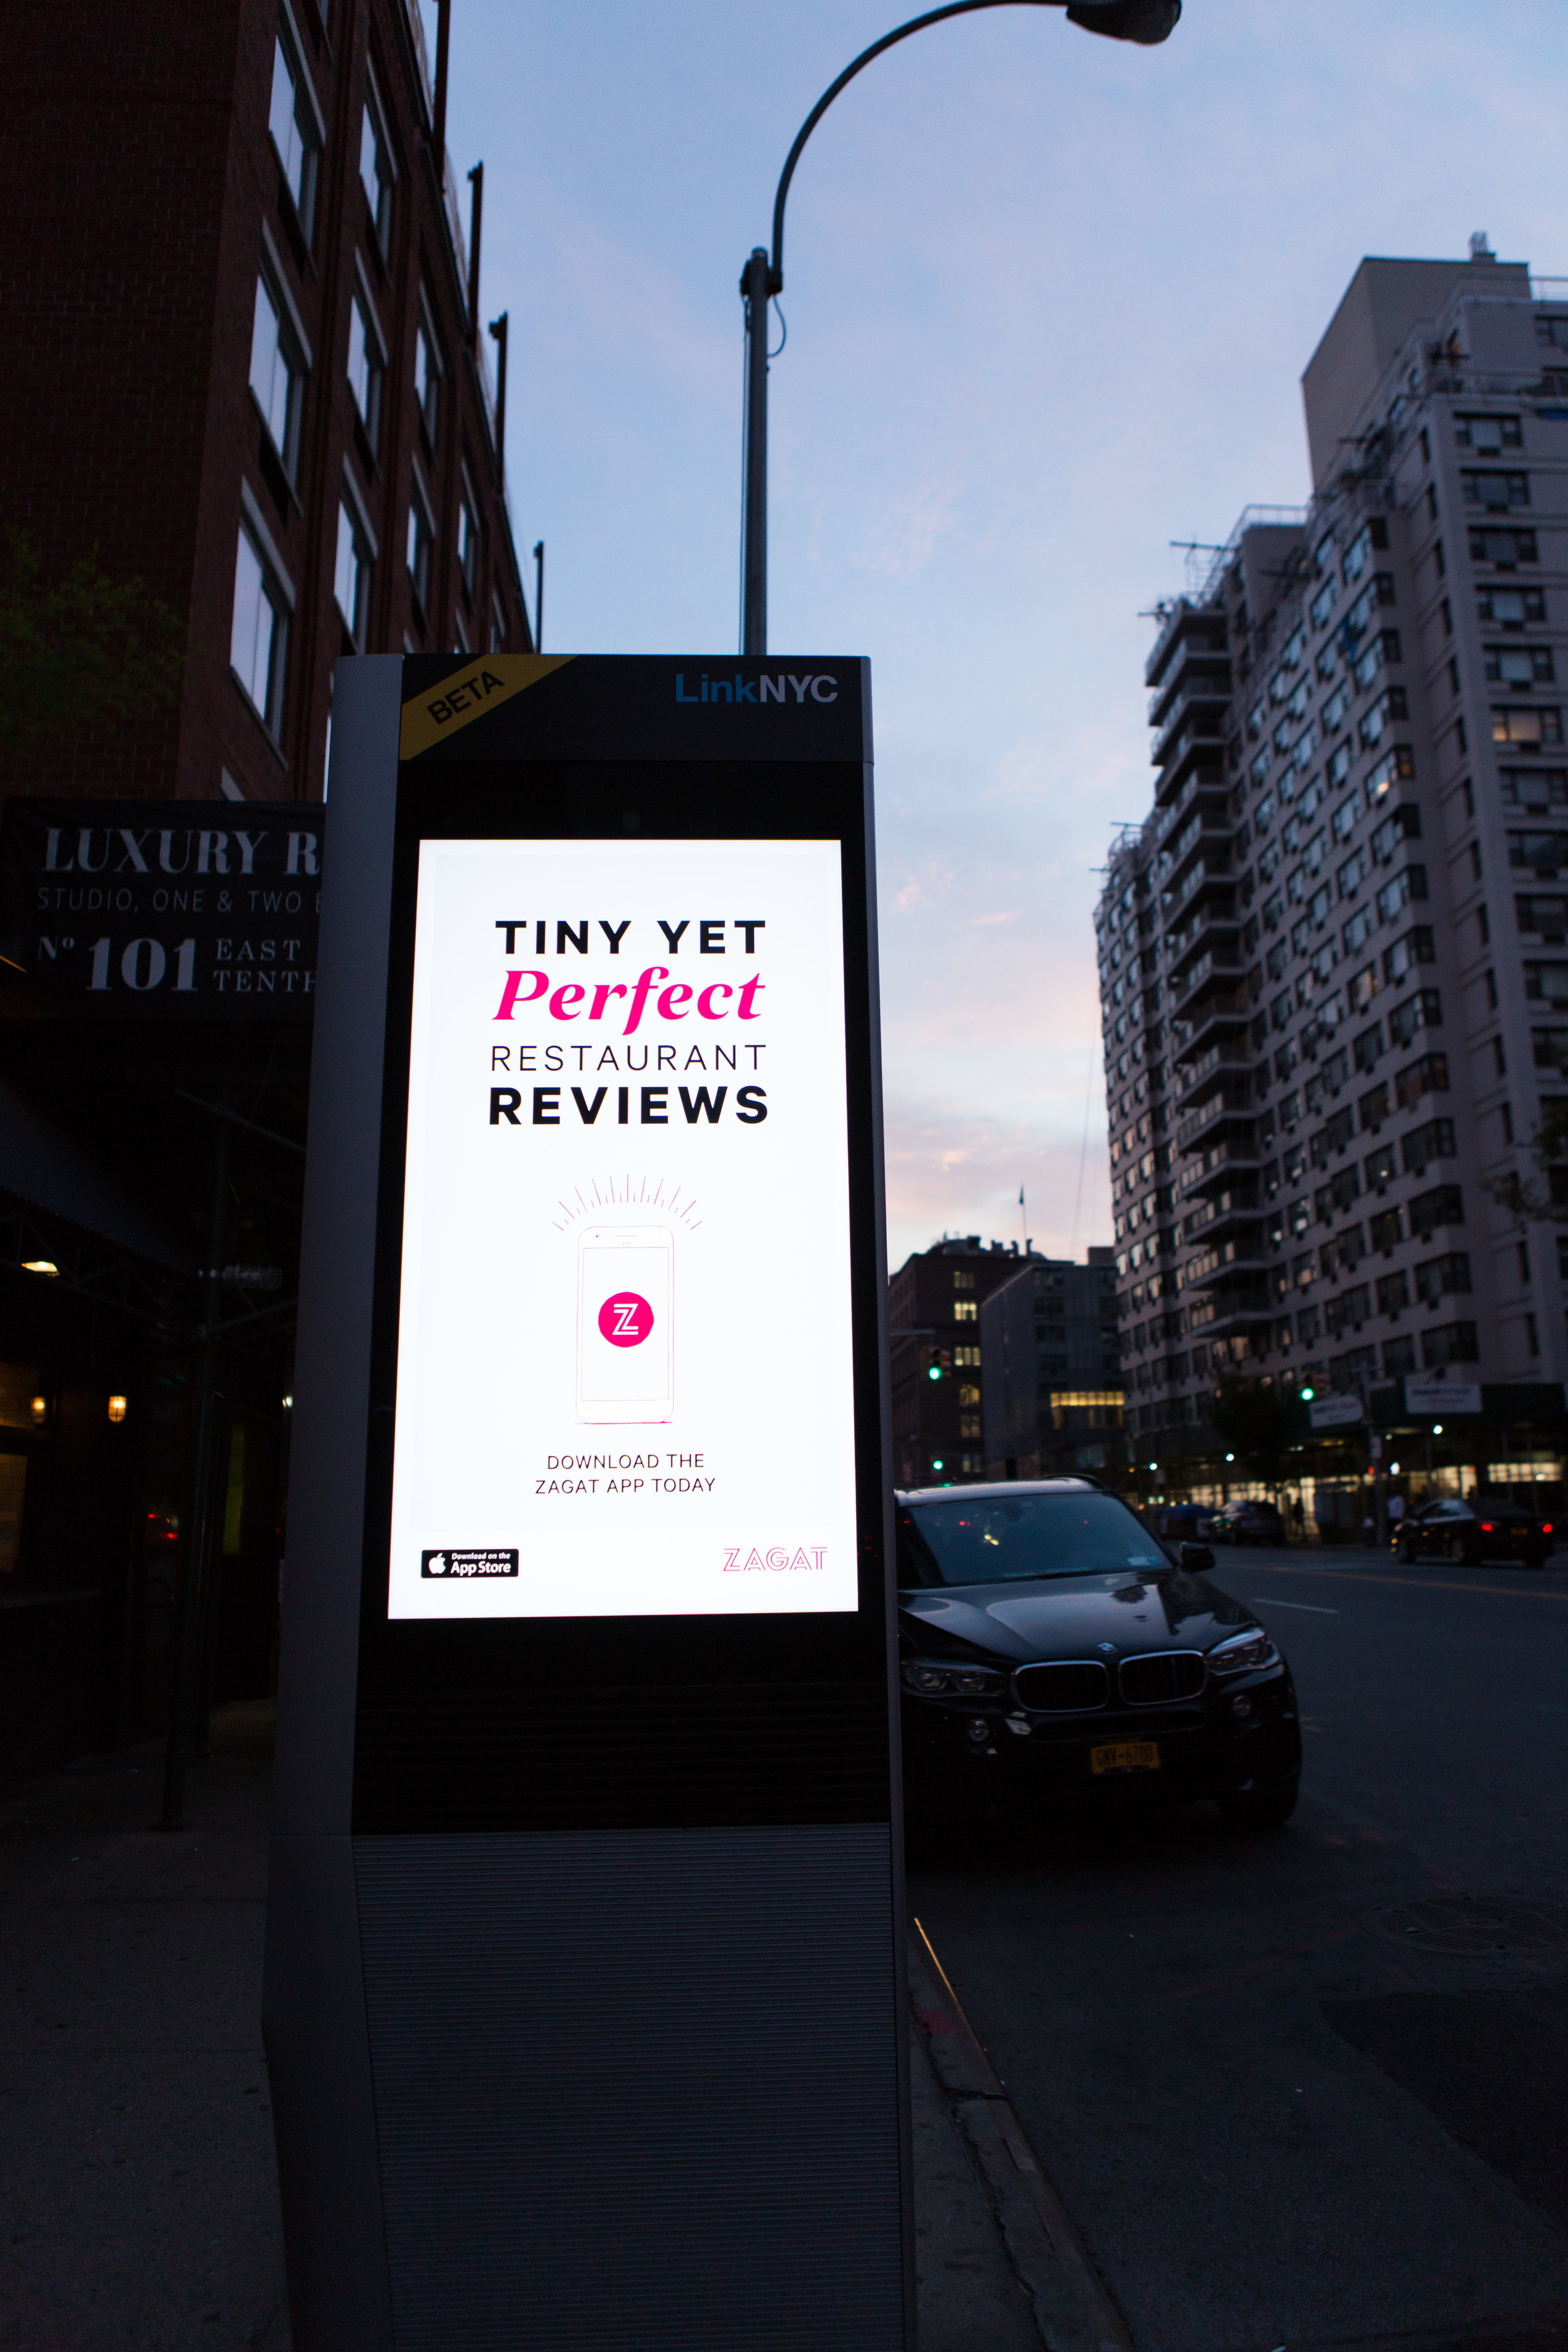 OOH in the vicinity around Astor Place promoted the new app with the tagline and drove New Yorkers to the event.